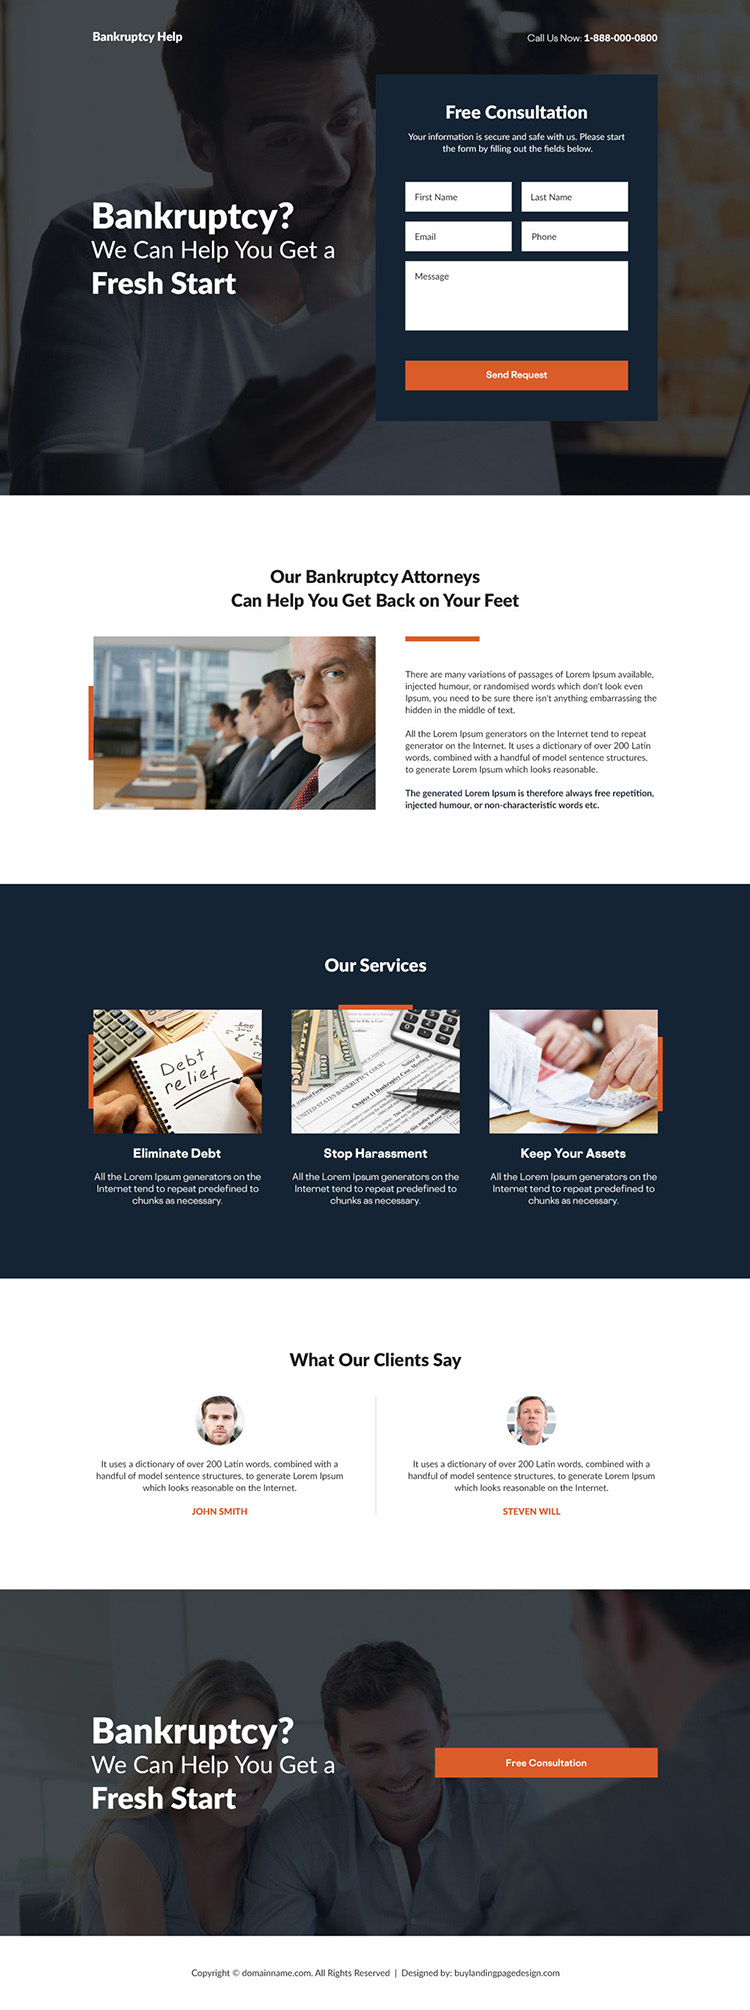 bankruptcy financing counselling responsive landing page